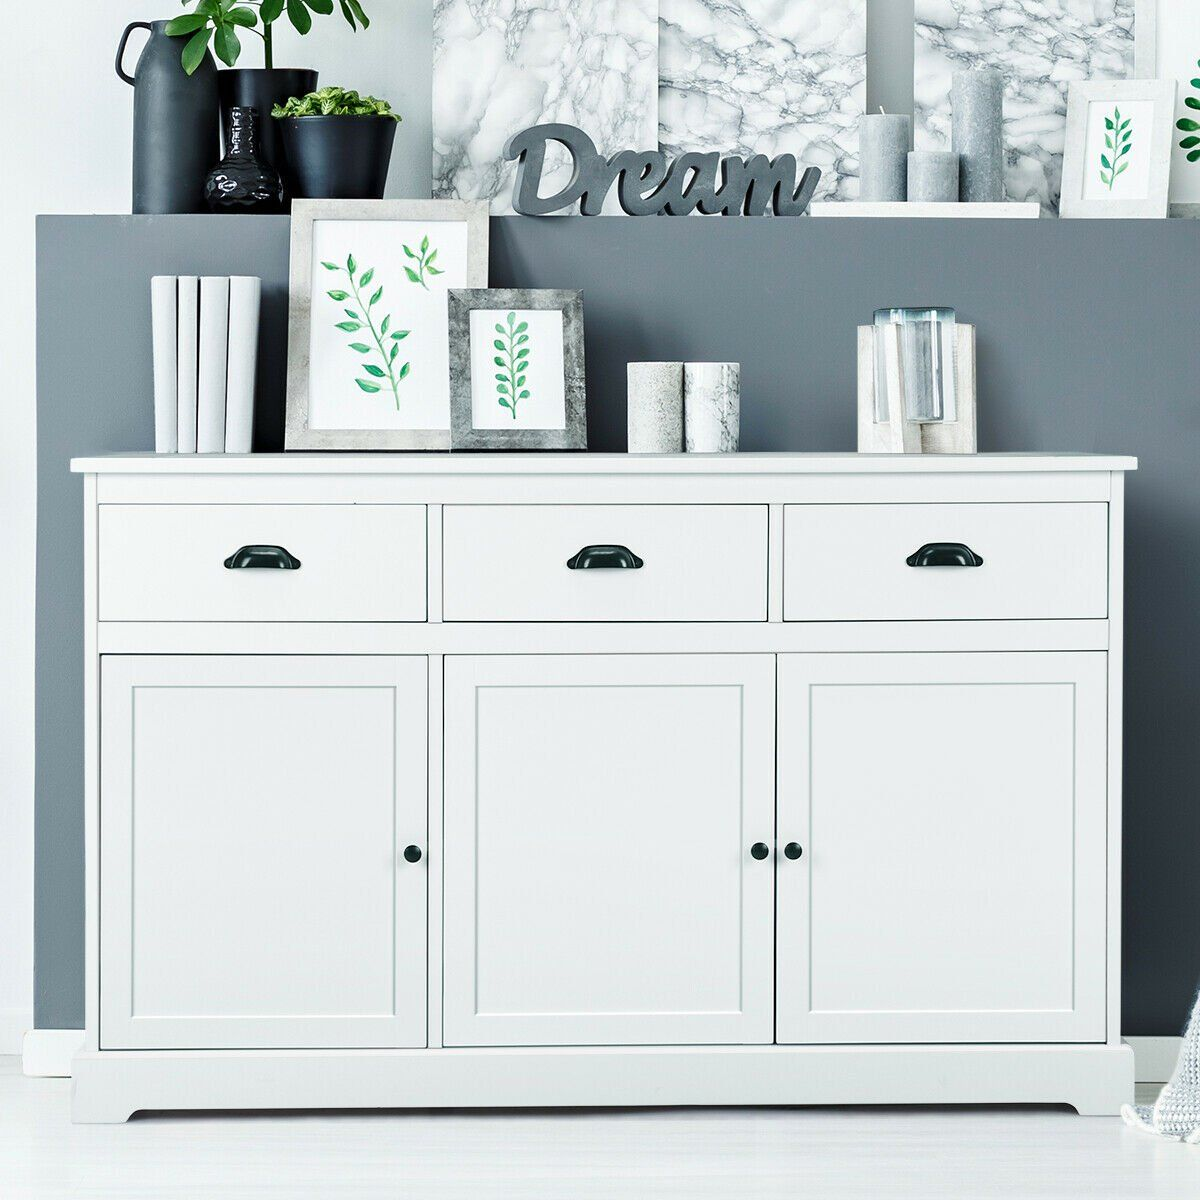 Gymax 3 Drawers Sideboard Buffet Cabinet Console Table Kitchen Storage Cupboard White Walmart Com In 2021 Sideboard Console Table Buffet Cabinet White Wood Kitchens